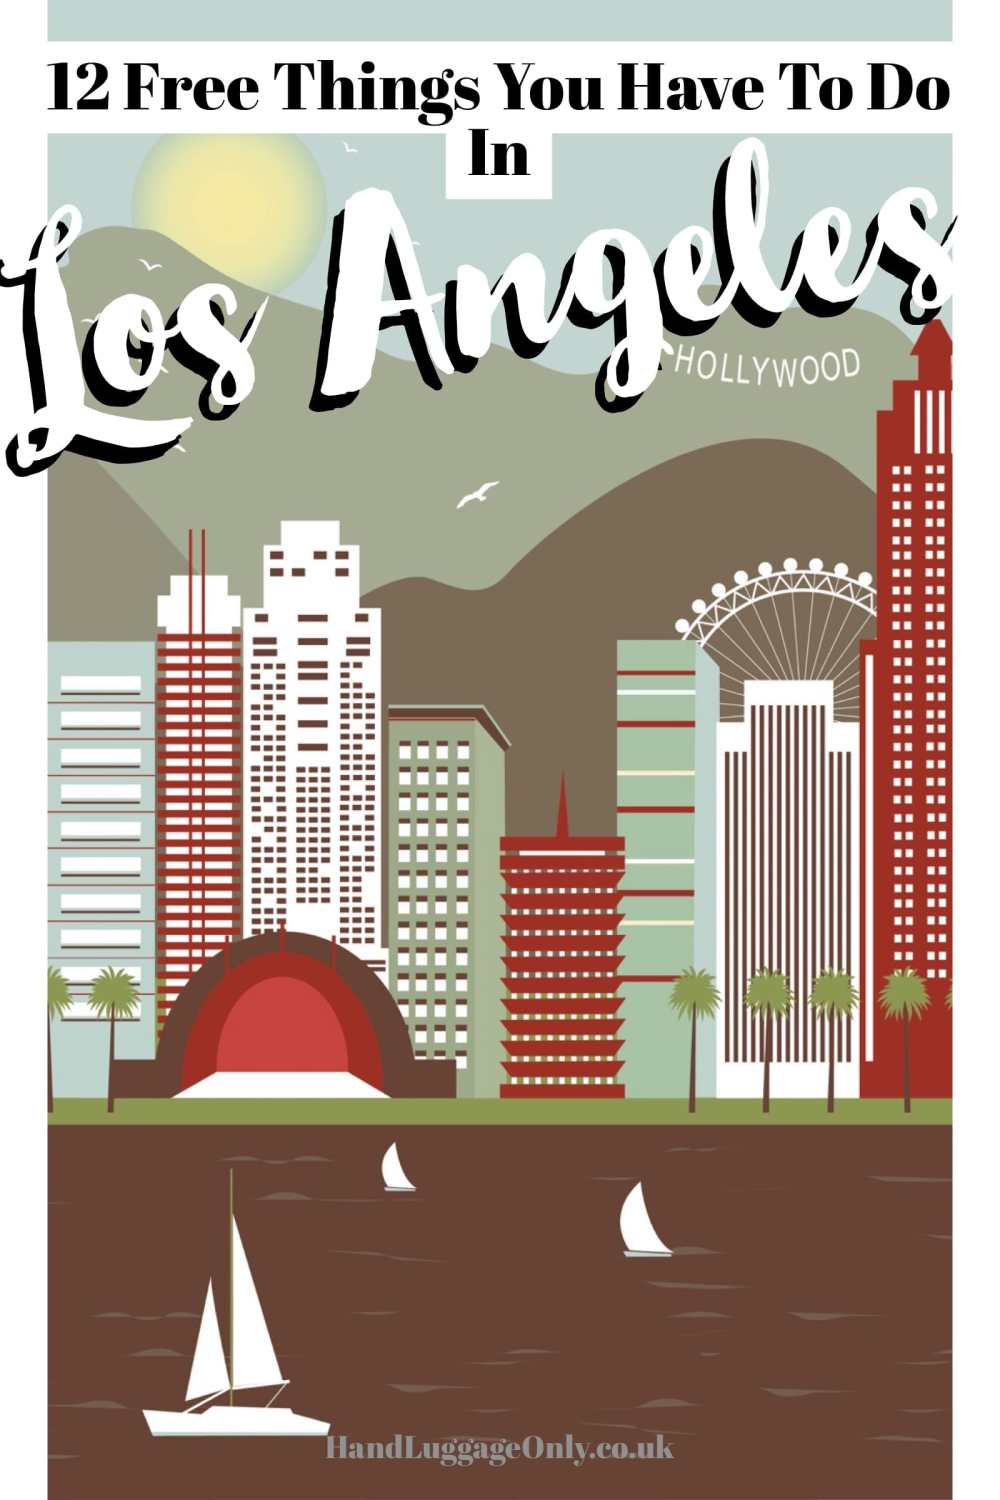 12 Free Things To Do In Los Angeles